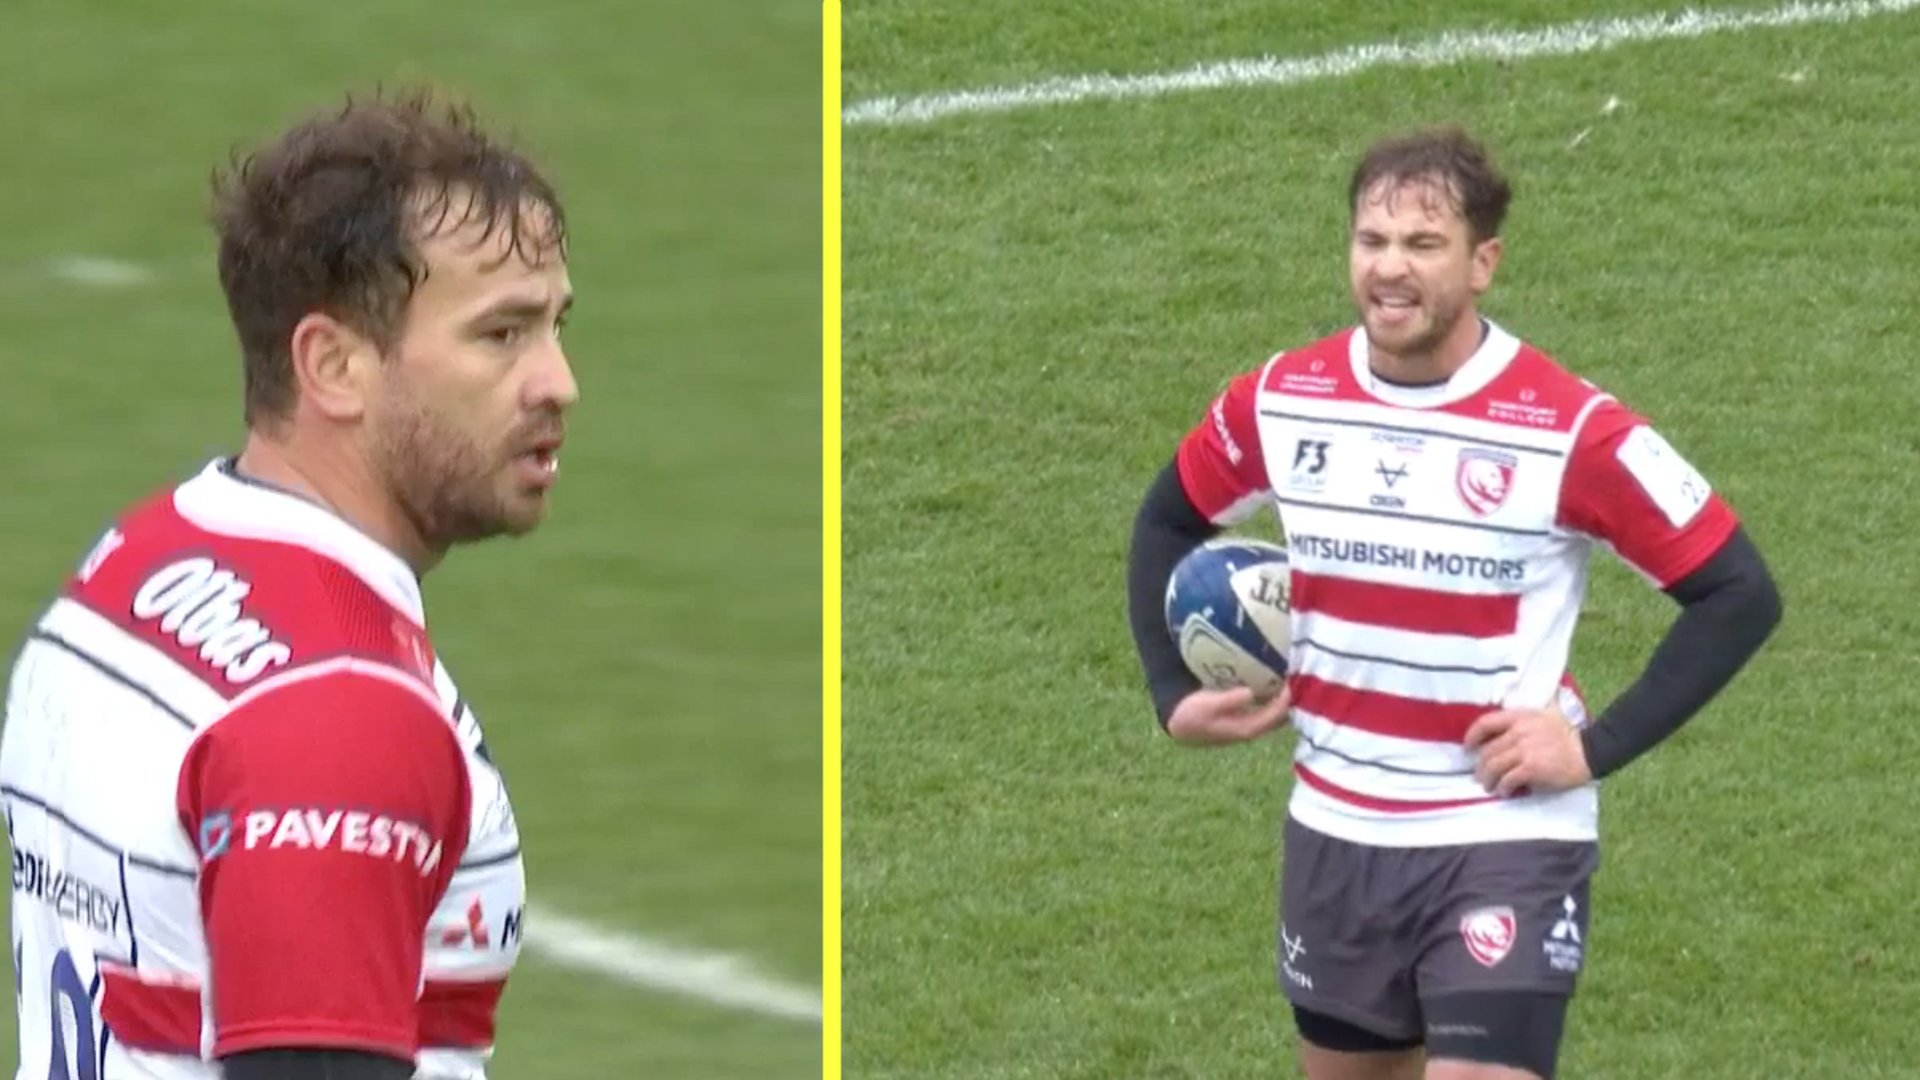 """Danny Cipriani accused of black magic after freak """"accidental"""" kick"""